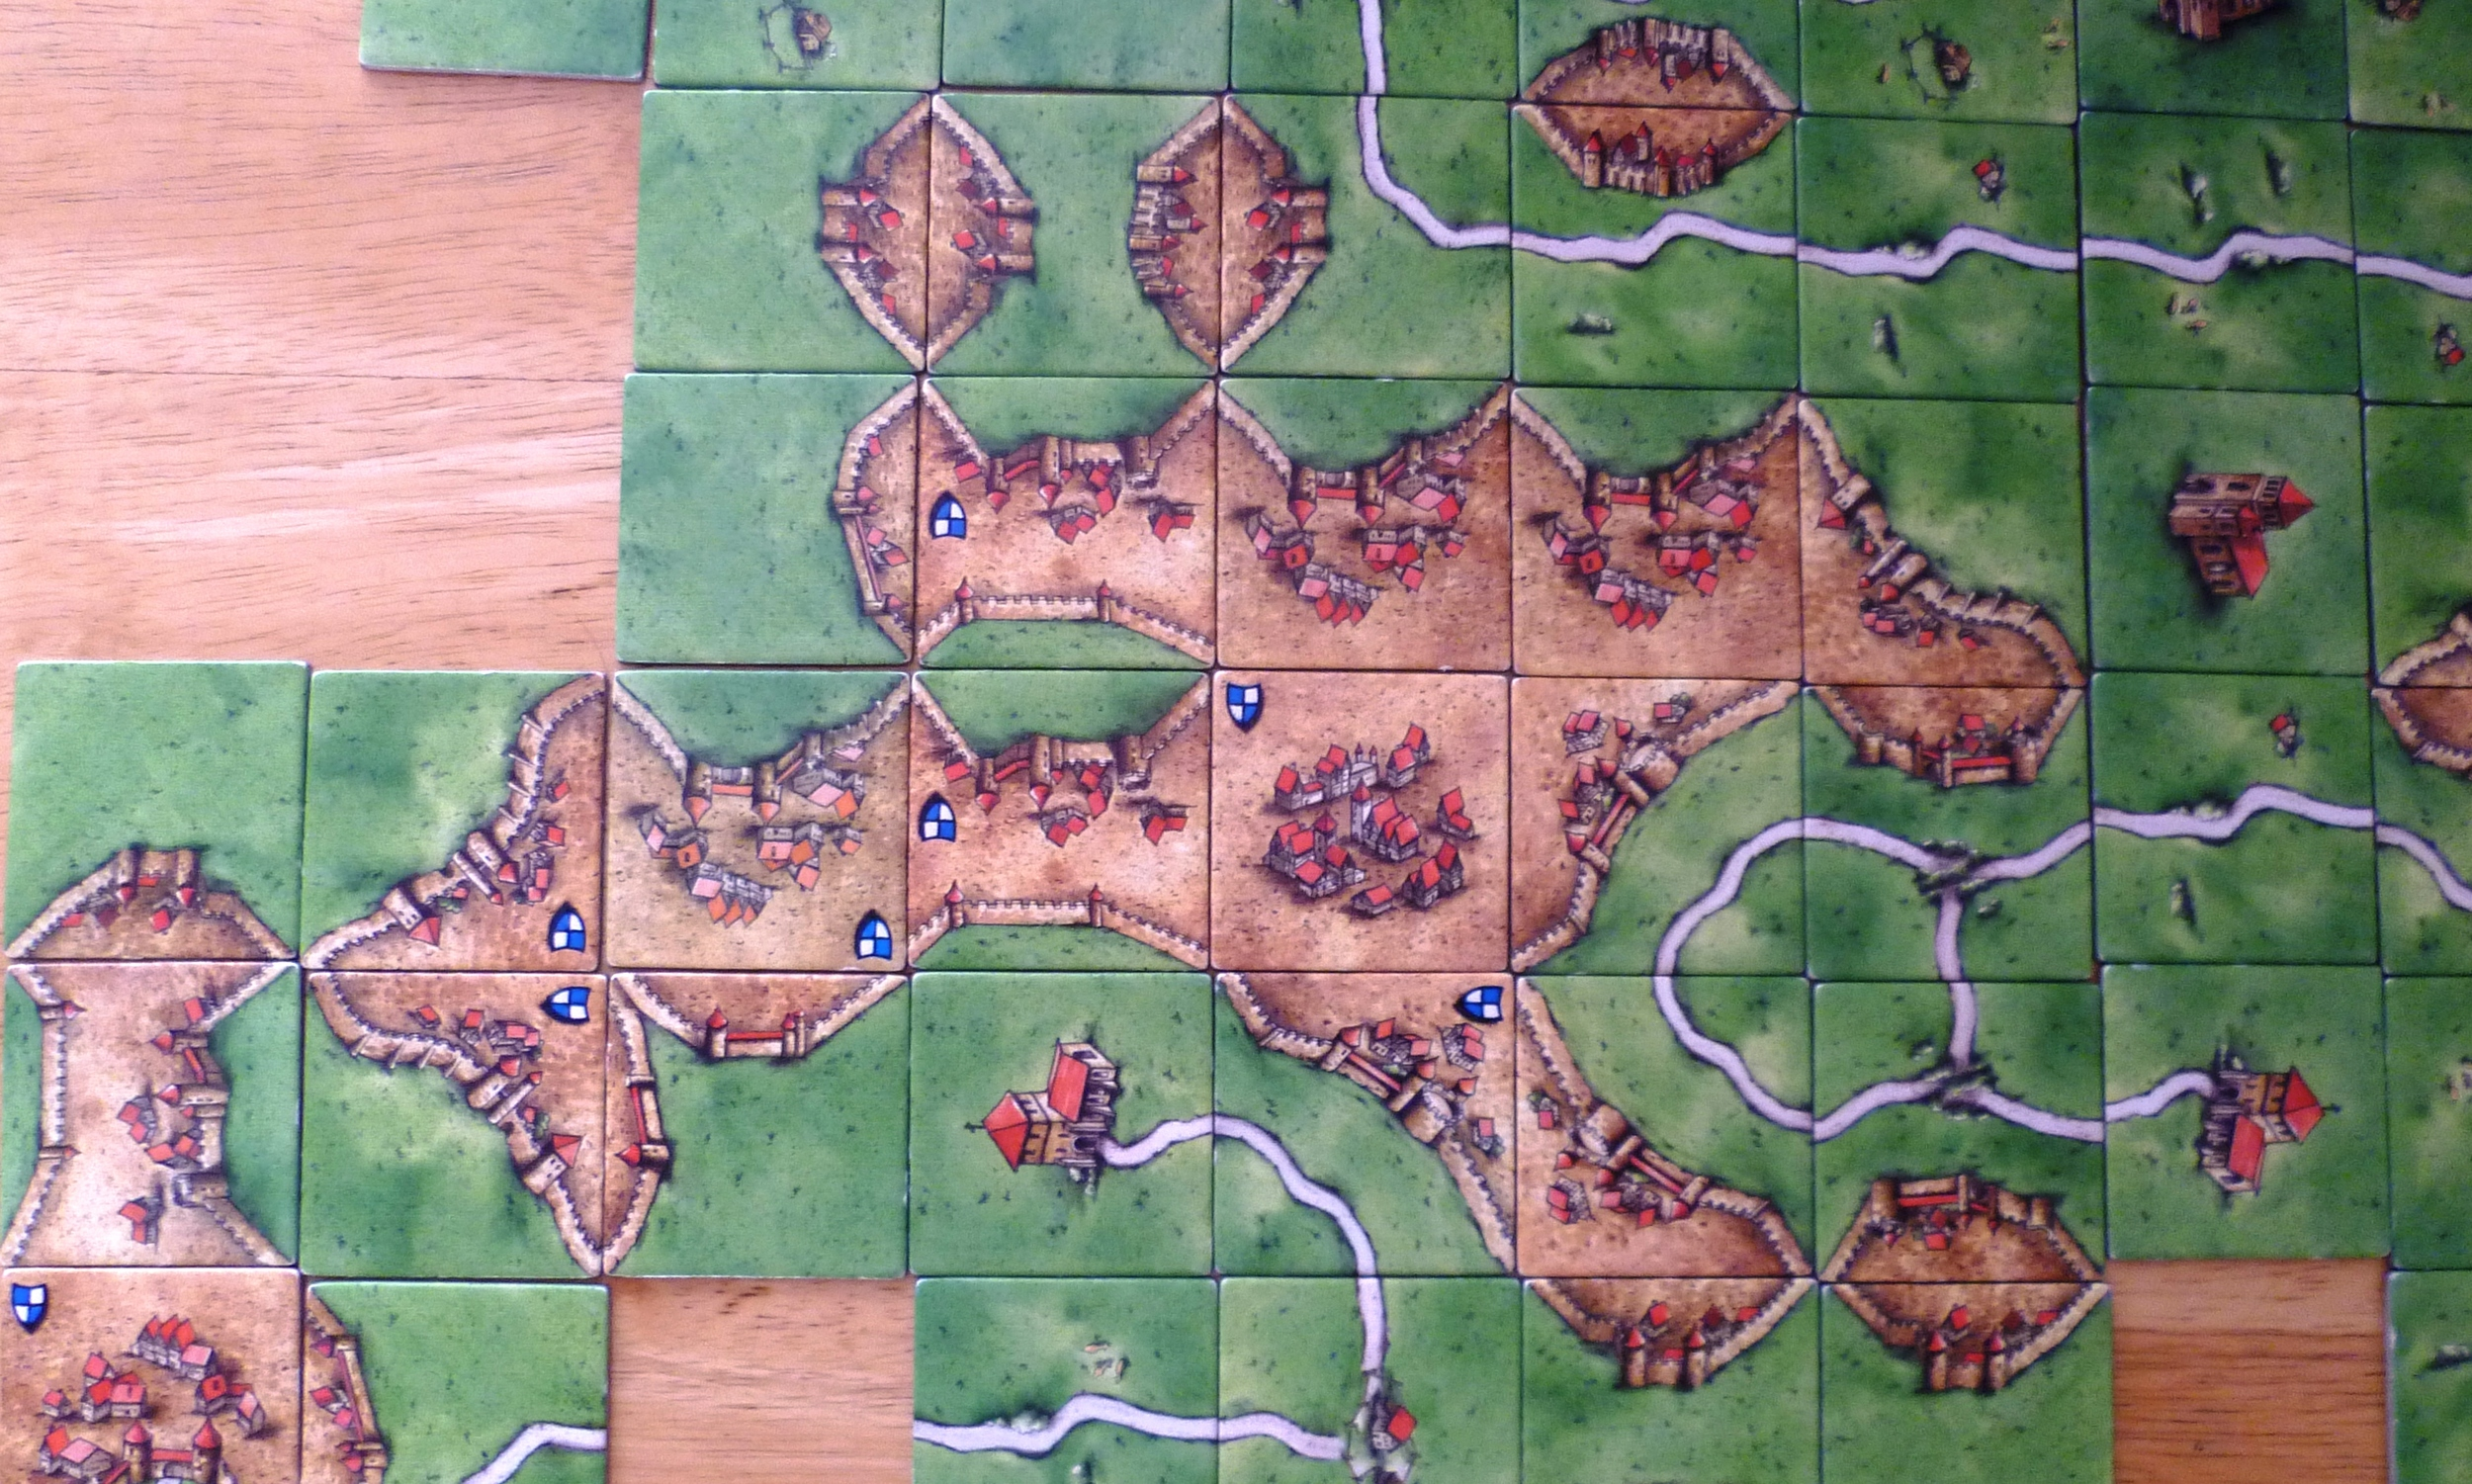 Part of the board at games end after scoring - Reds town eventually earned him 46 points